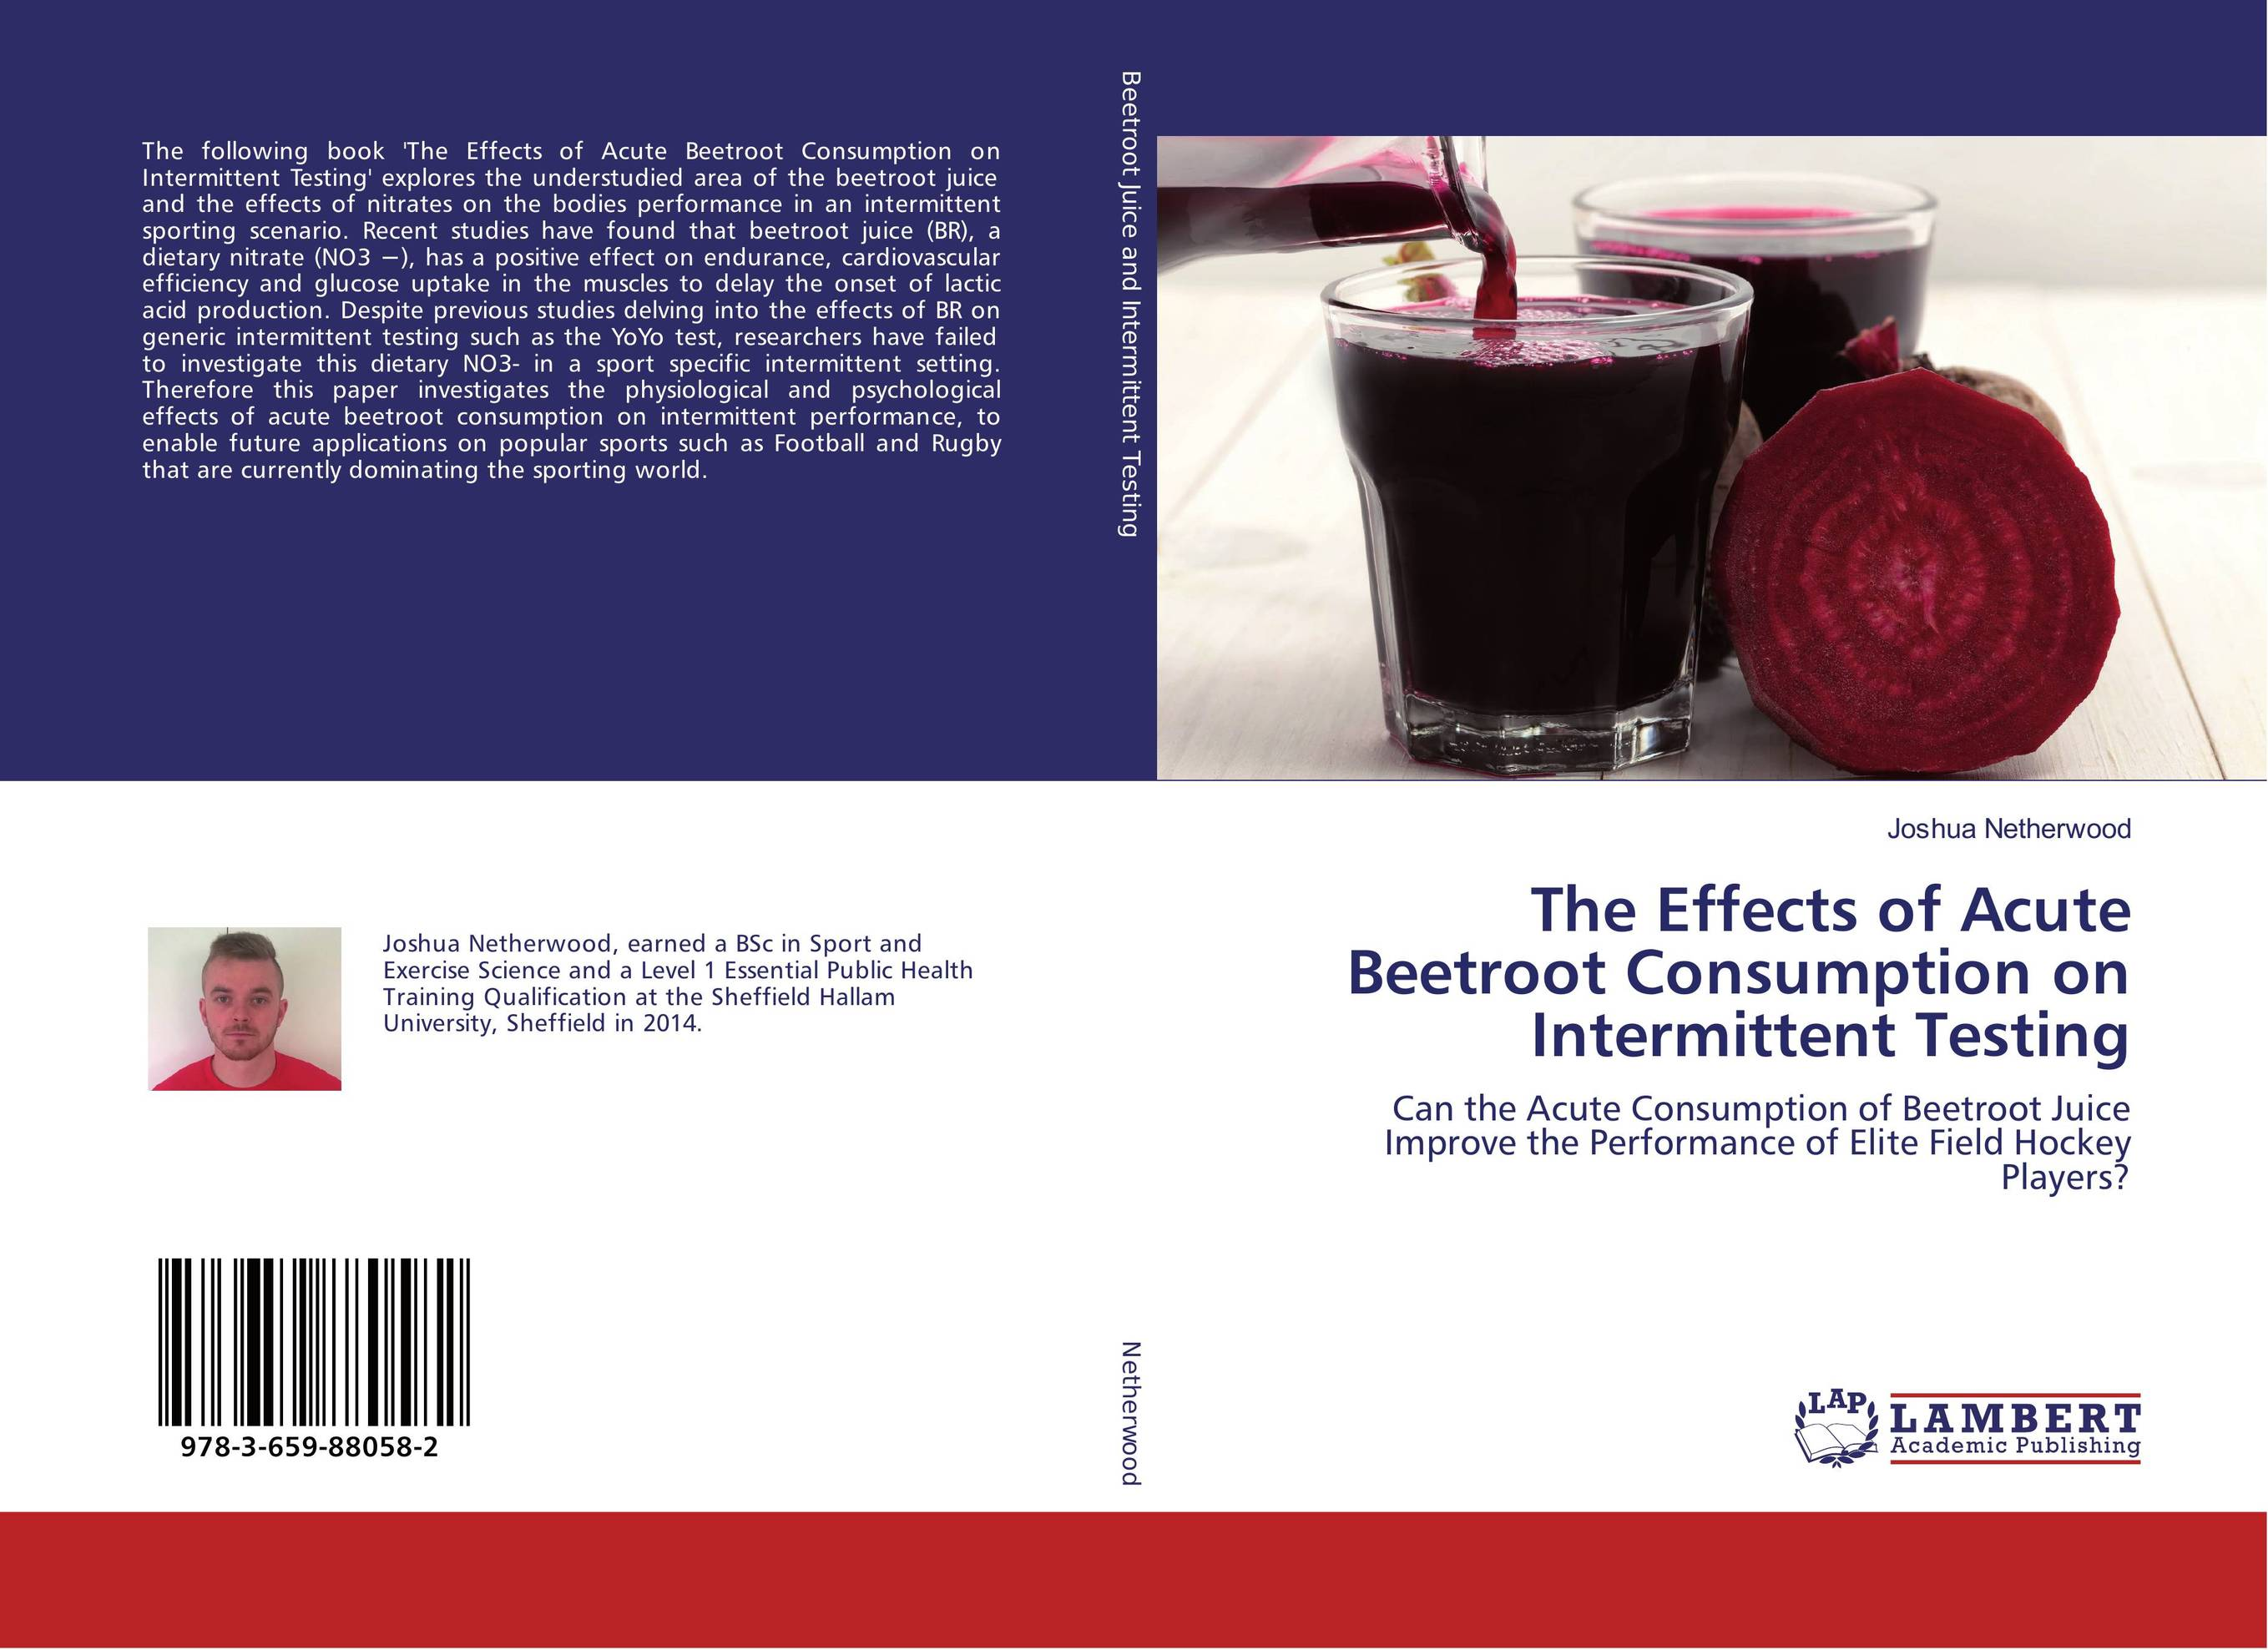 The Effects of Acute Beetroot Consumption on Intermittent Testing like bug juice on a burger